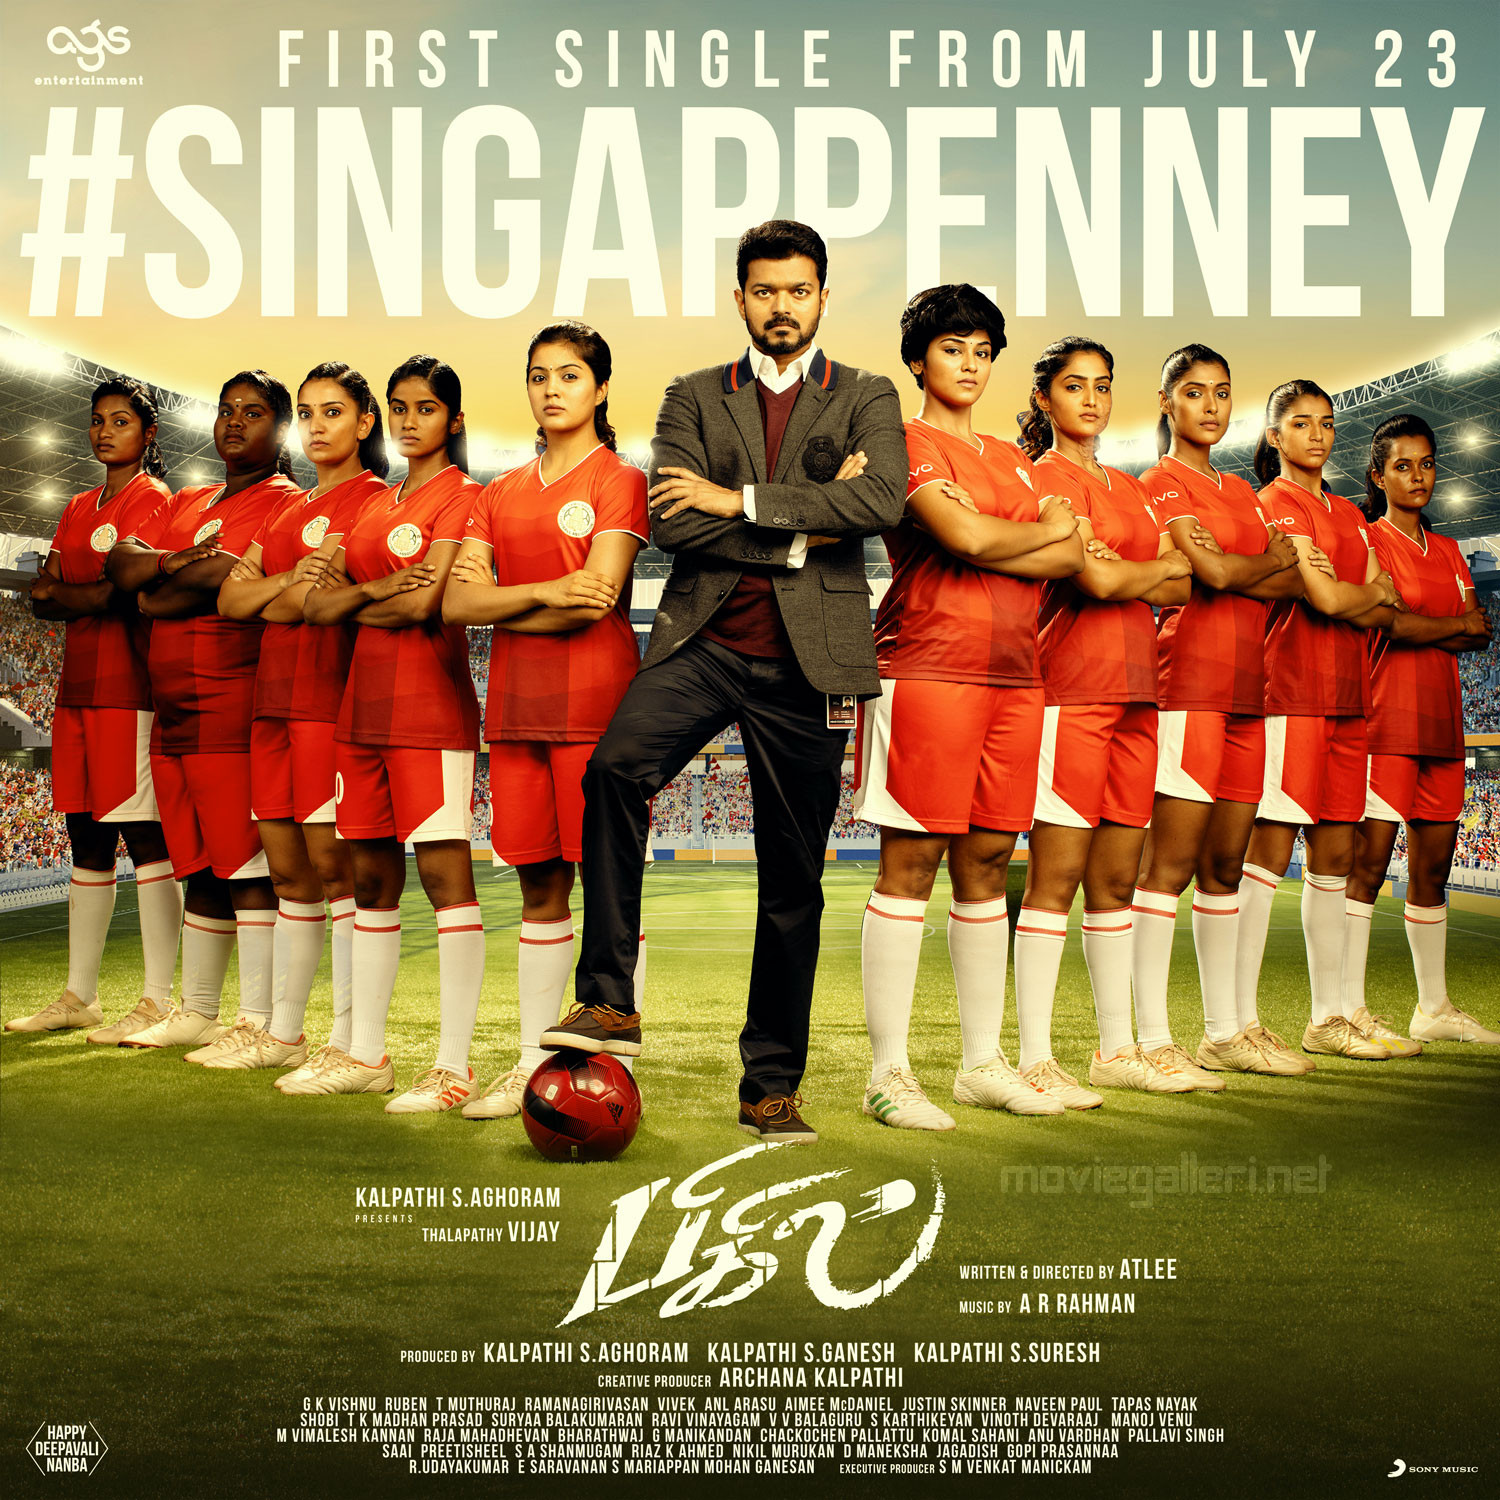 Vijay Bigil Movie Singappenney Single Release from July 23rd Poster HD